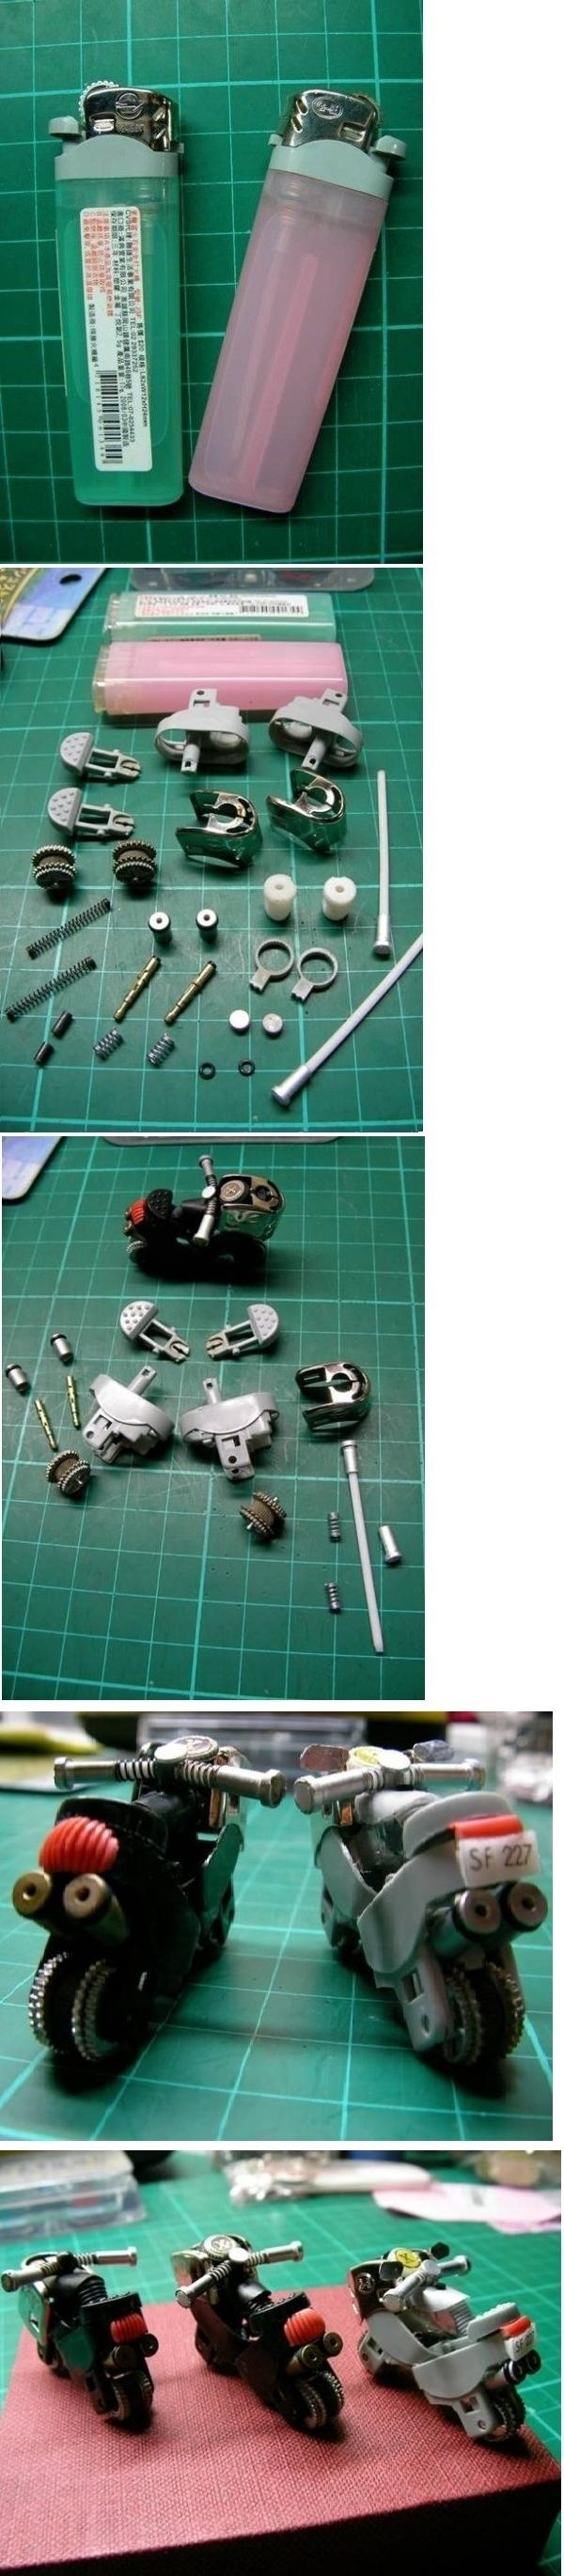 Miniature Bike Made From Lighter Parts